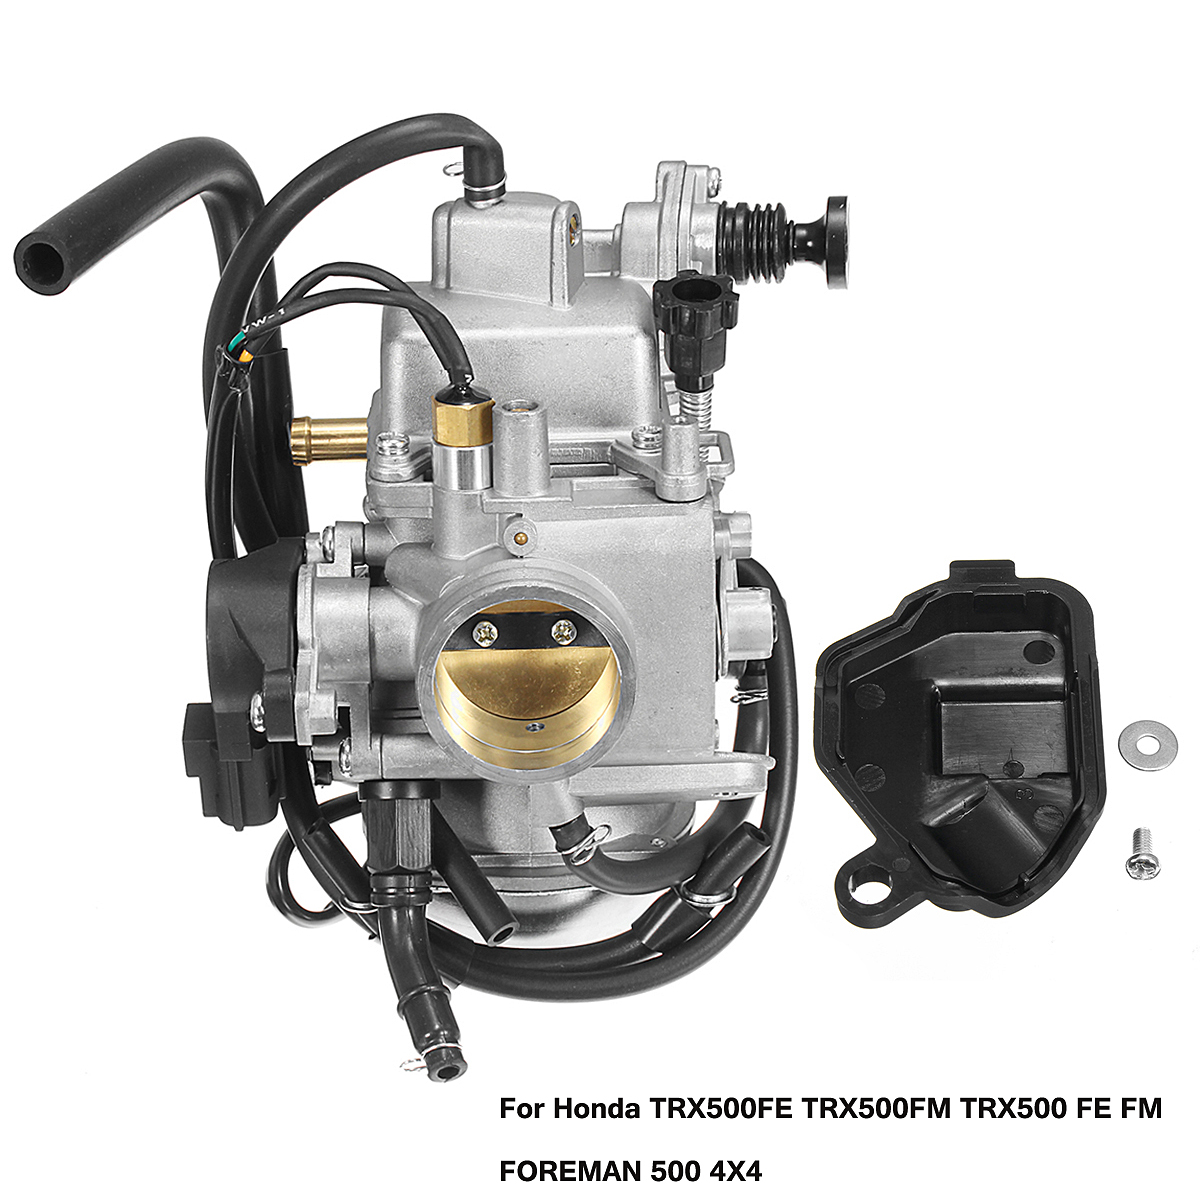 Carburetor Carb for TRXFE TRXFM TRX FE FM Foreman 4X4